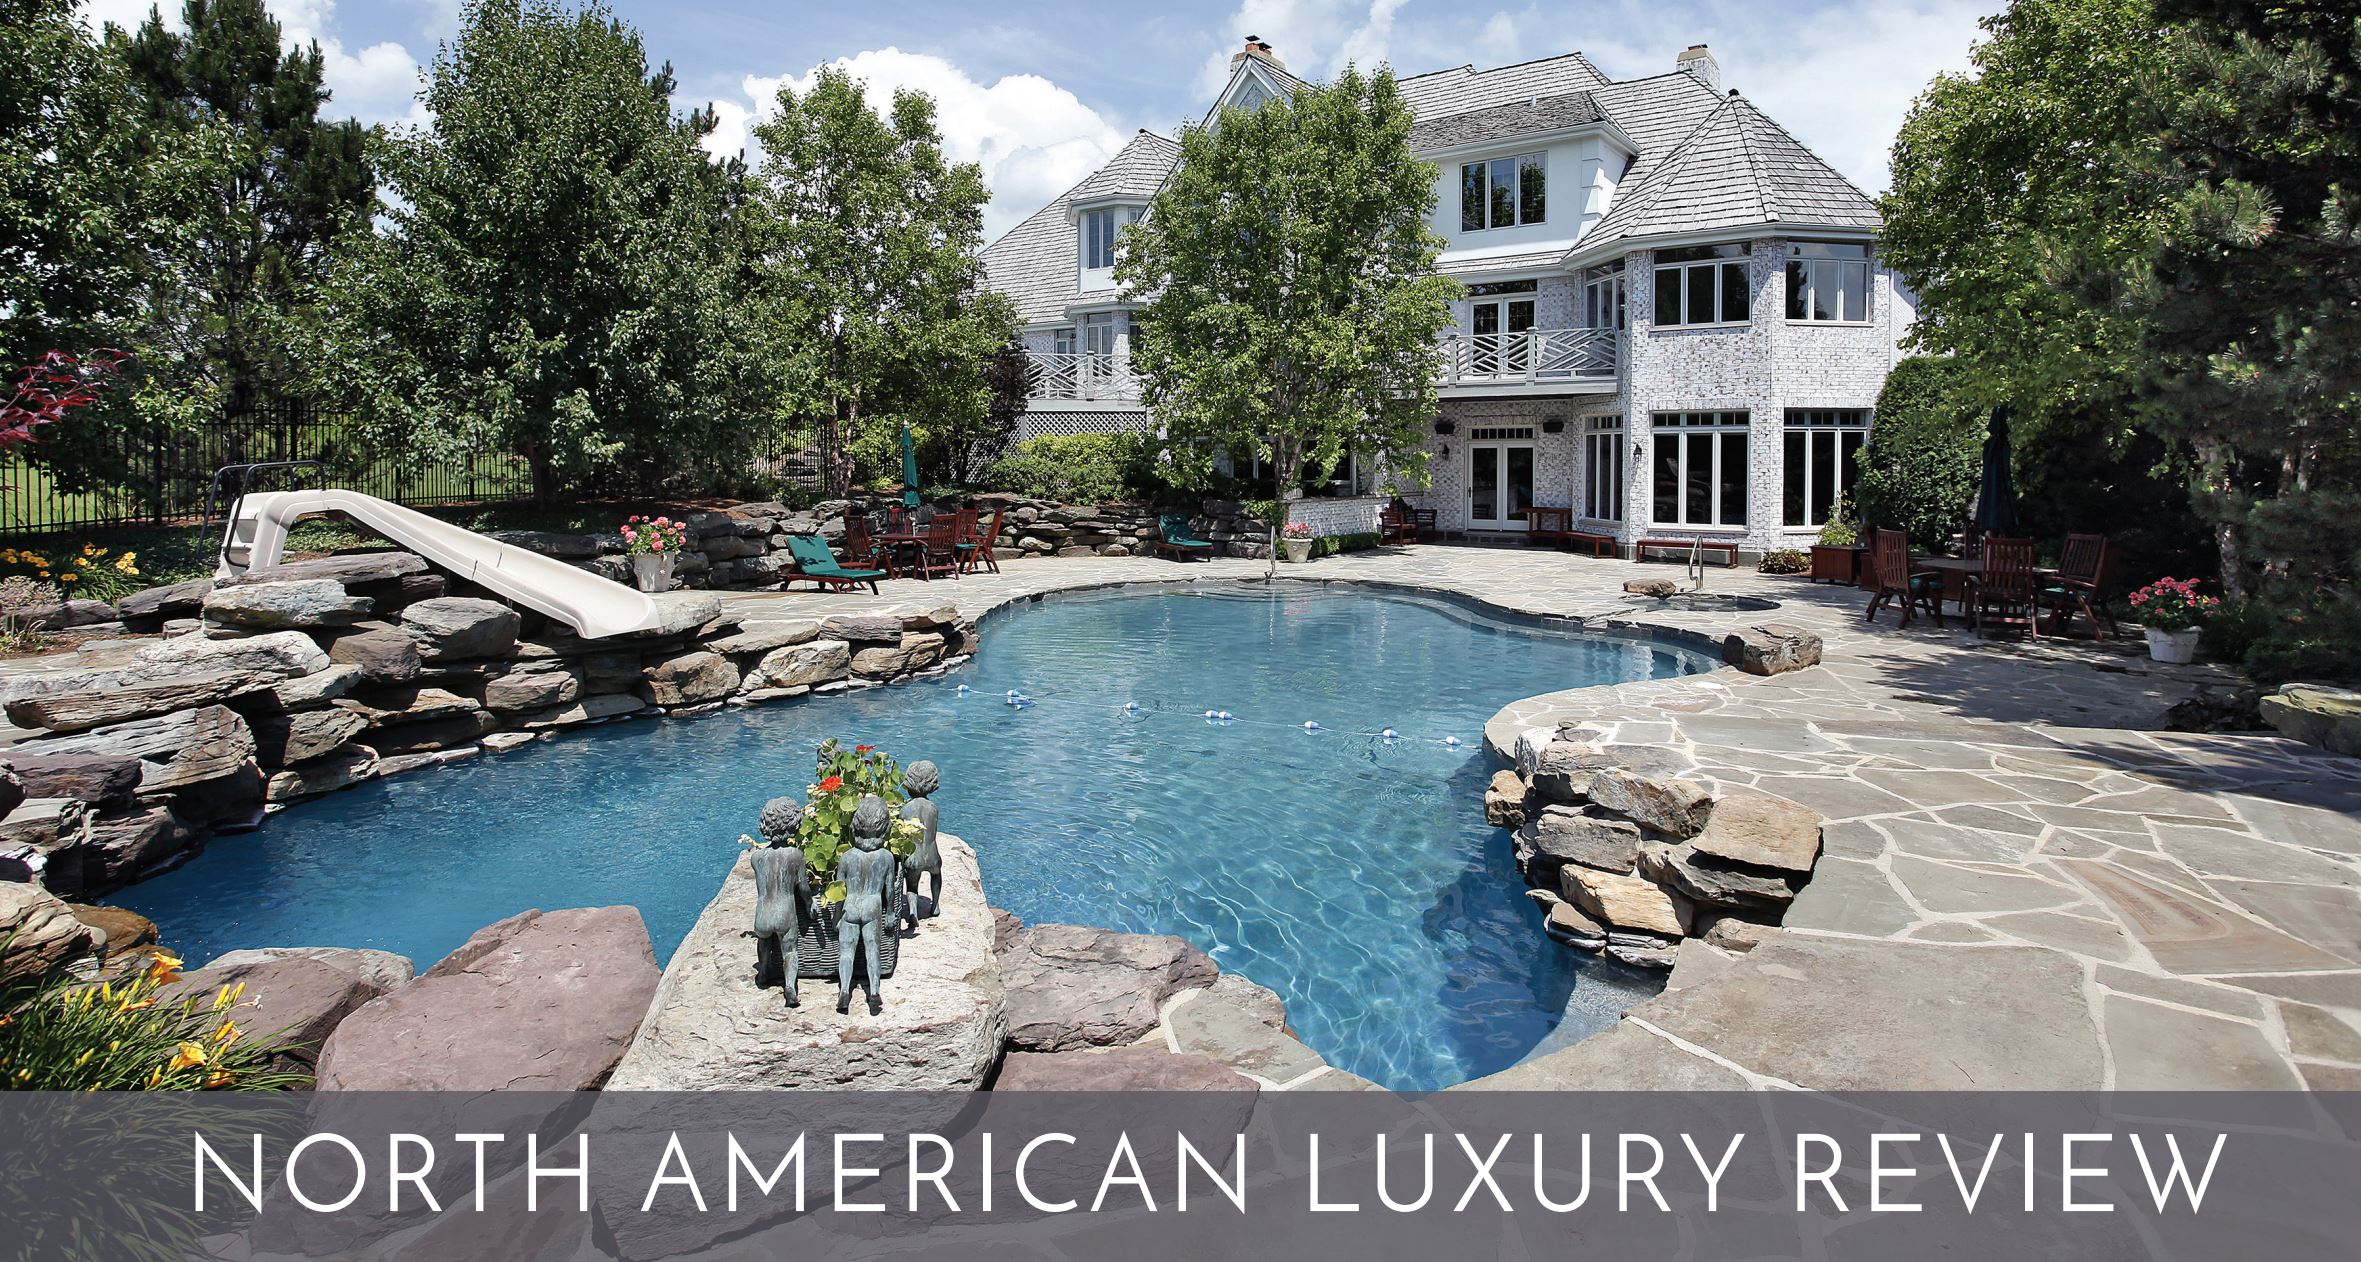 ILHM Institute for Luxury Home Marketing - CLHMS Certified Luxury Home Marketing Specialist 2021 02 26 February Luxury Home Market Report North American Luxury review for North America Hoey Team exp Realty